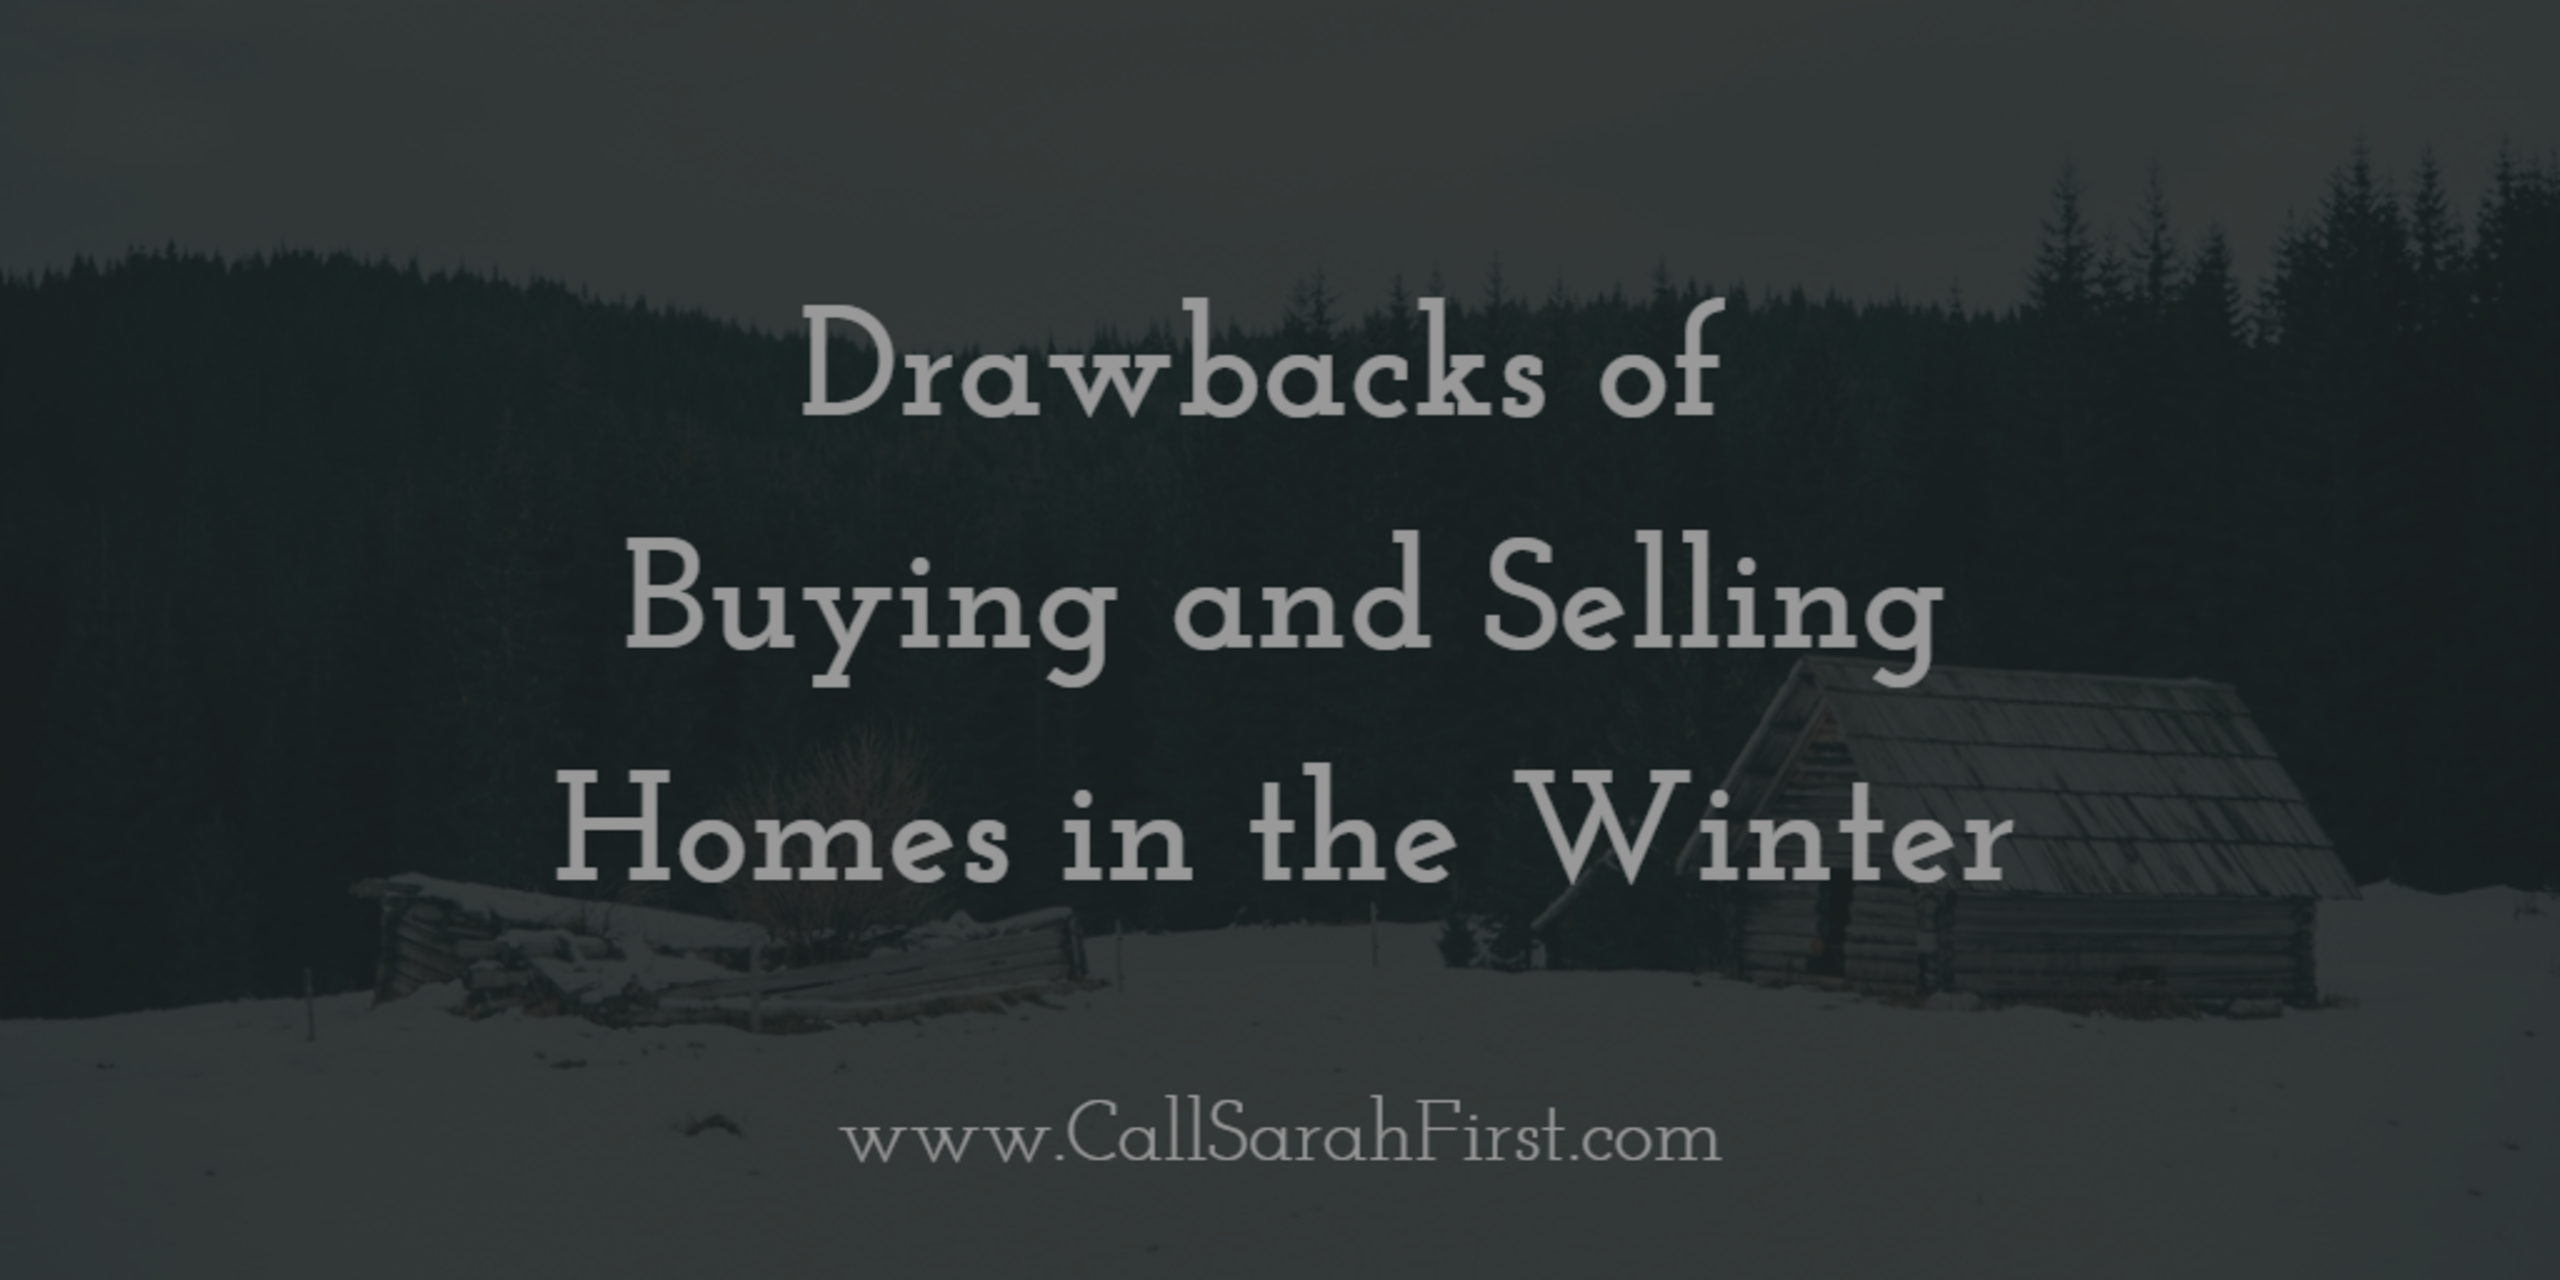 Drawbacks of Buying and Selling Homes in the Winter